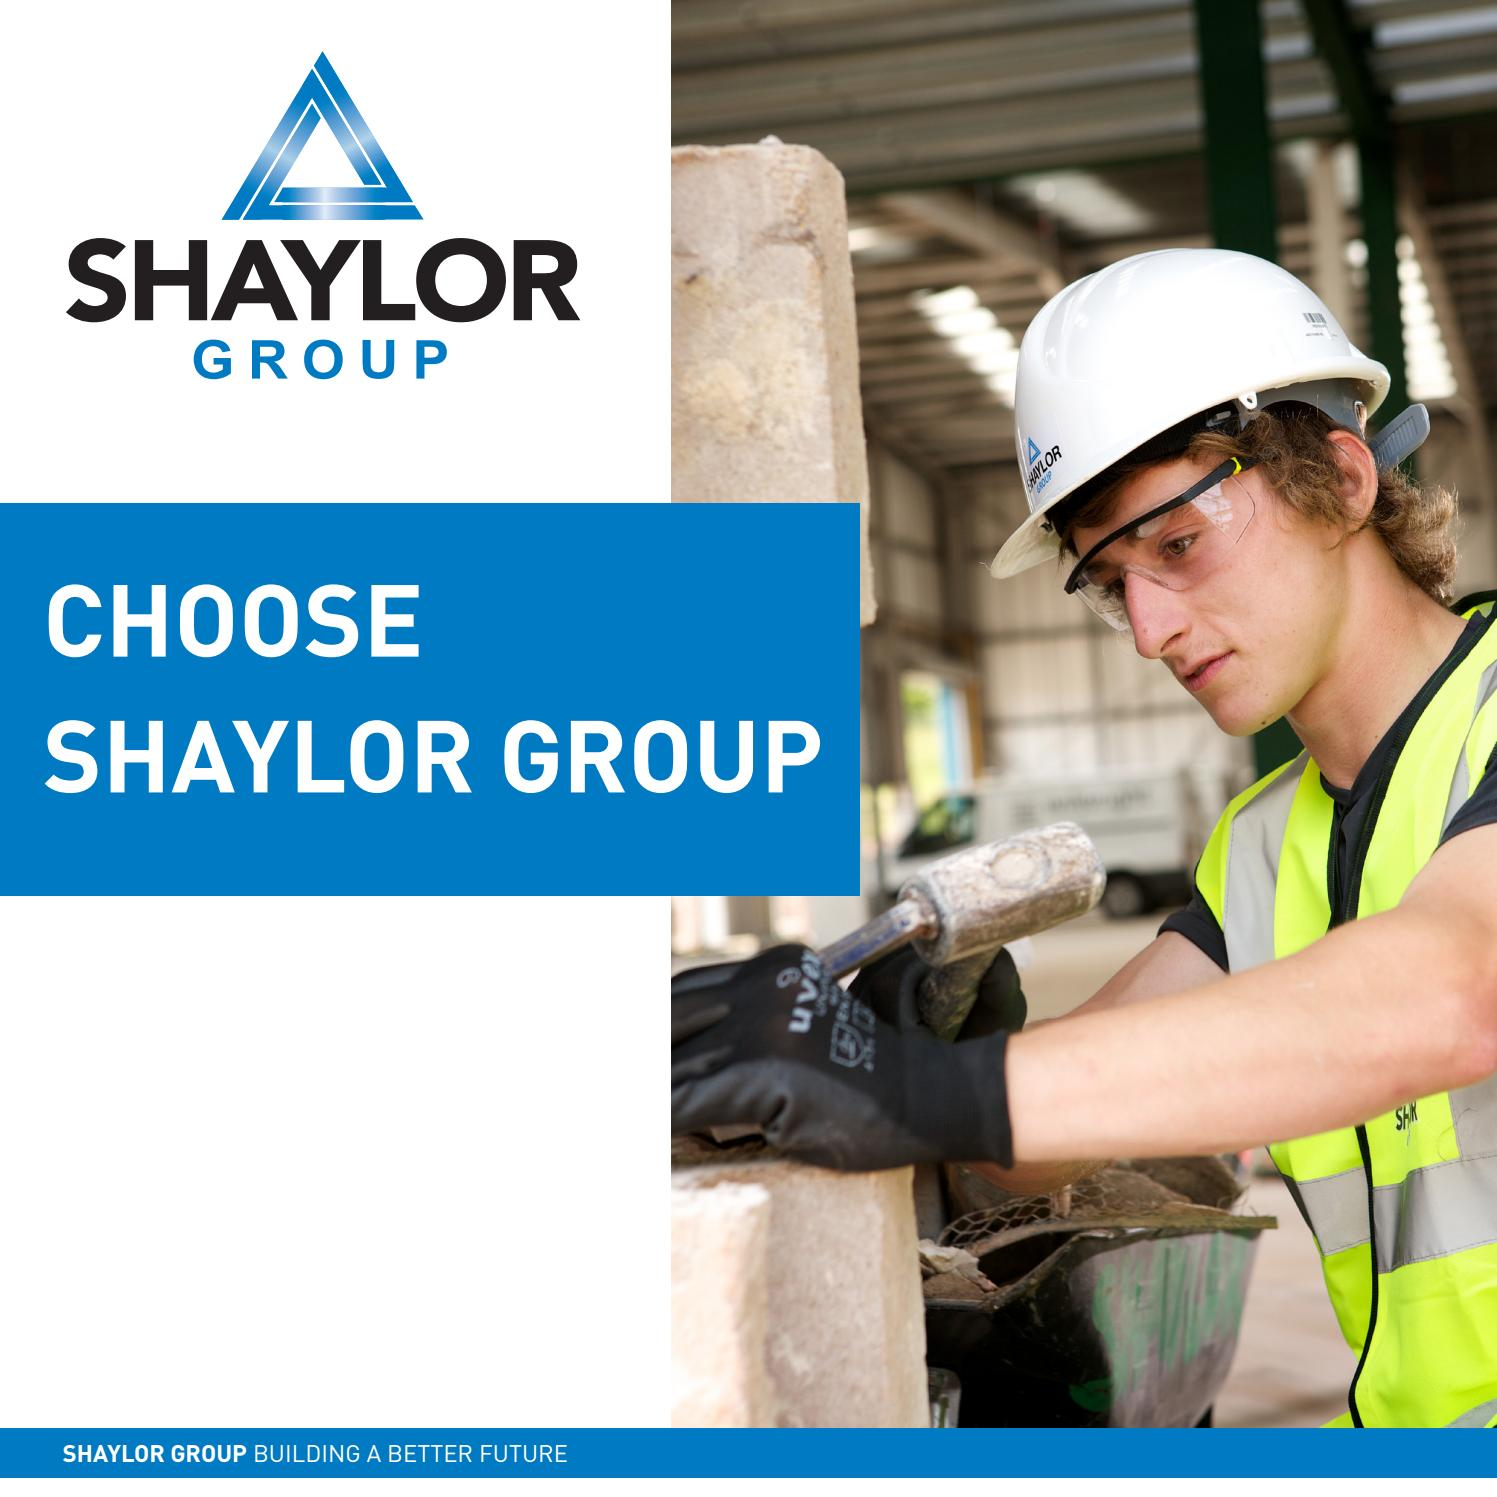 Shaylor Group